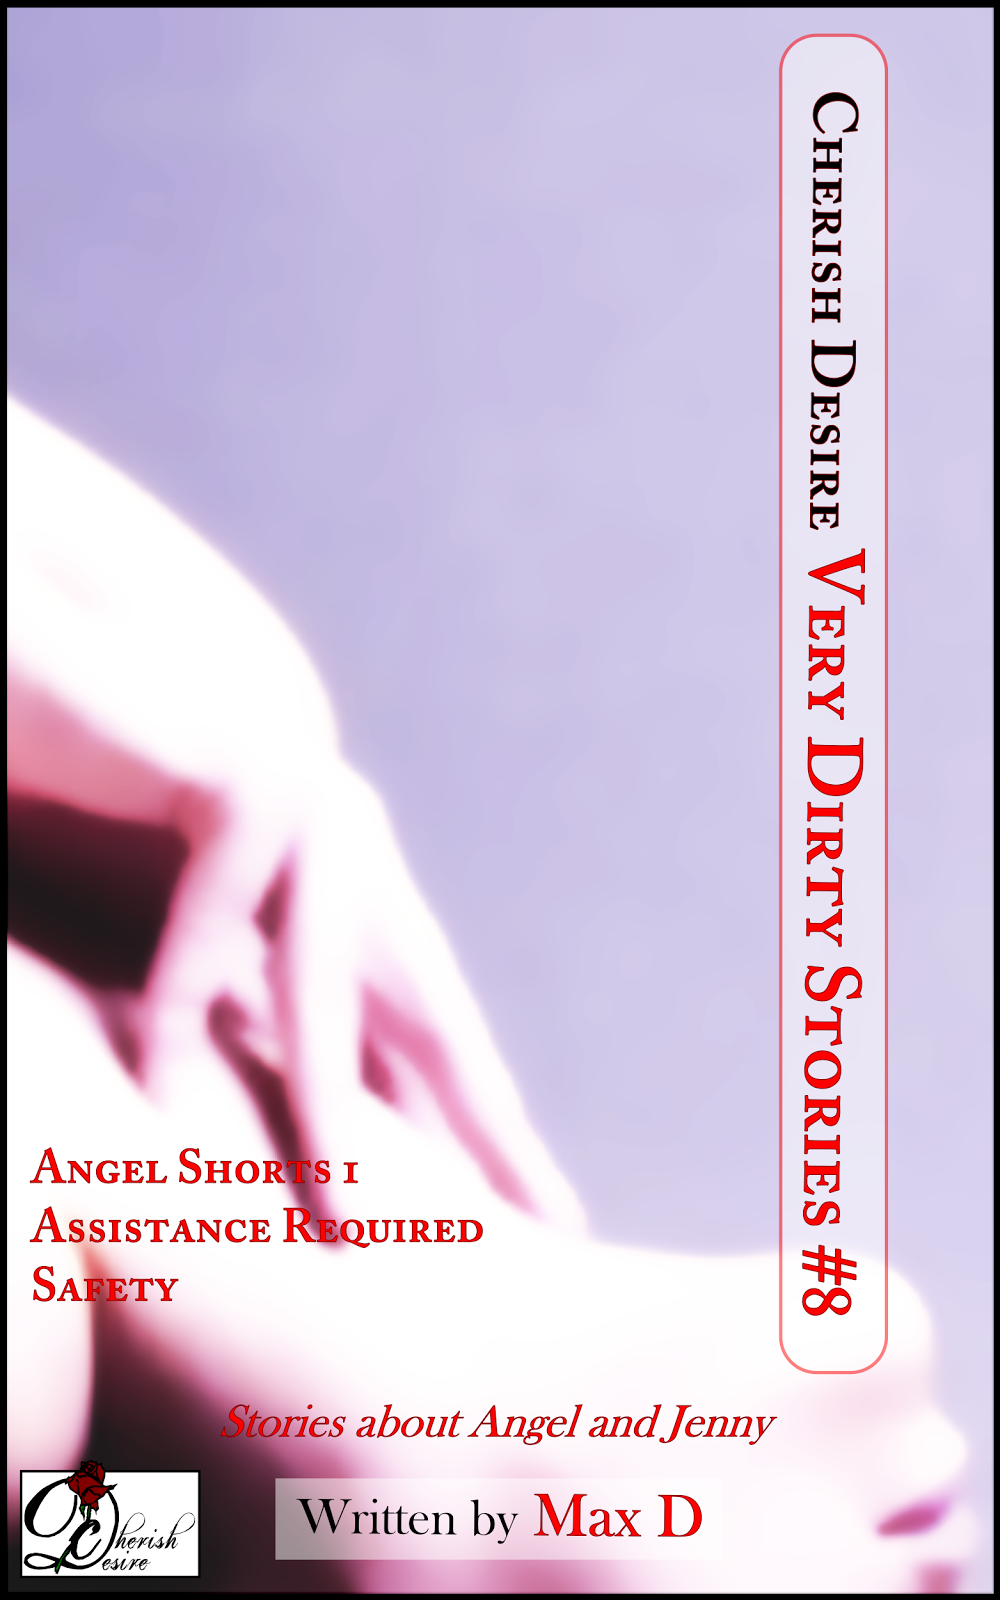 Cherish Desire: Very Dirty Stories #8, Max D, erotica